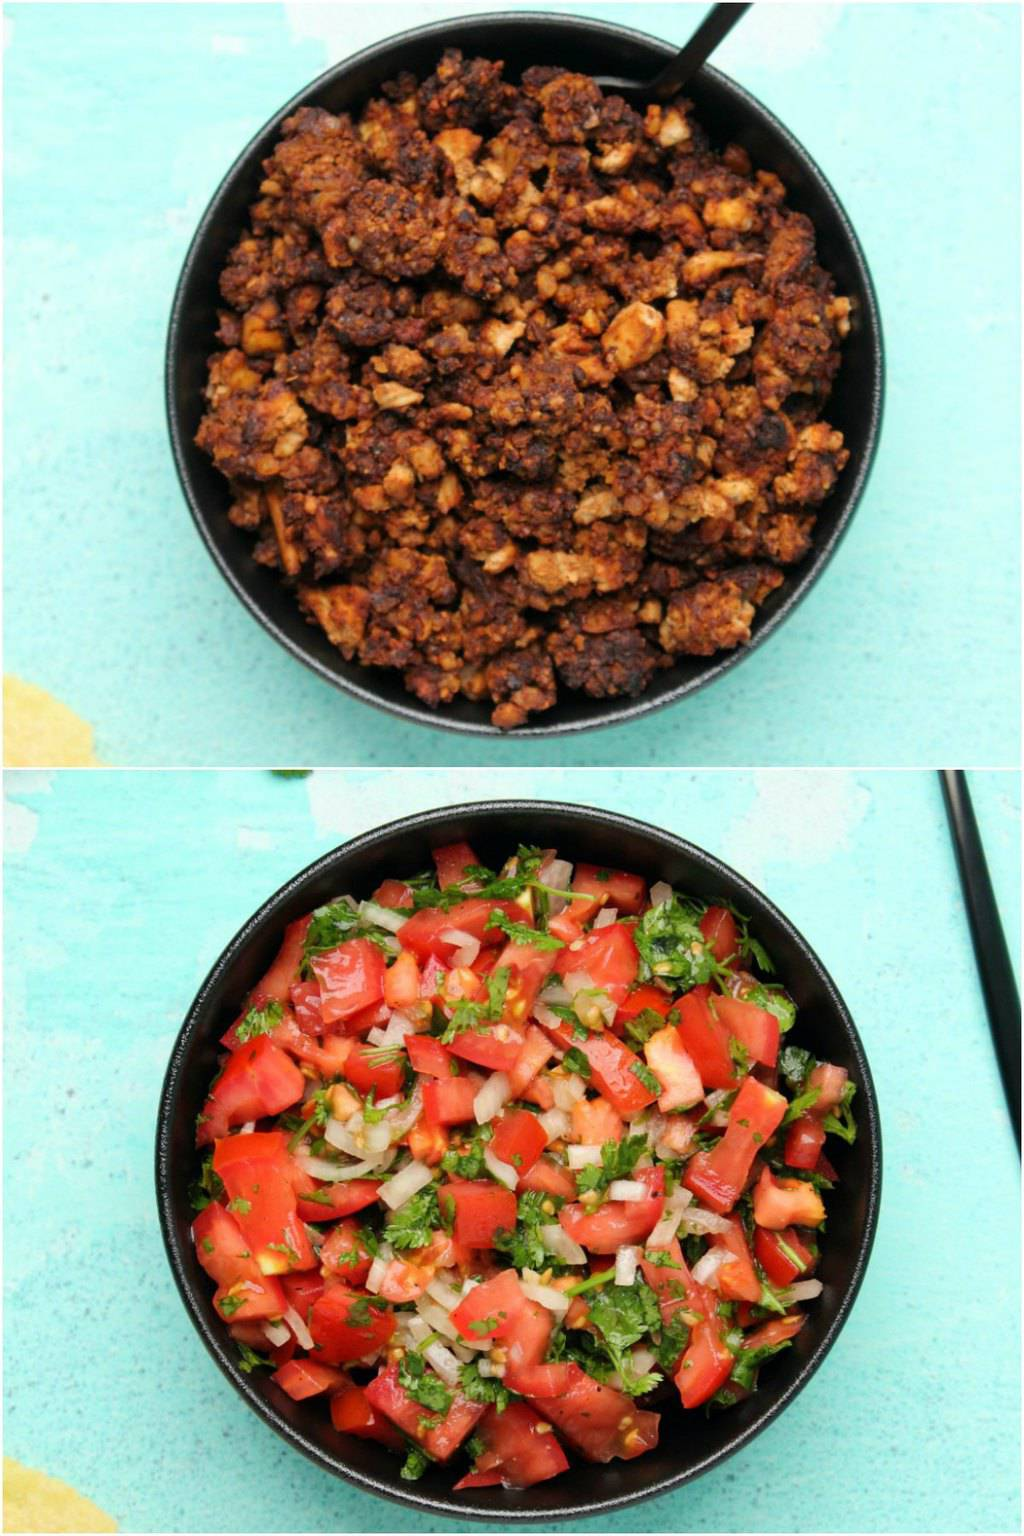 Vegan taco meat and pico de gallo for vegan taco meat.